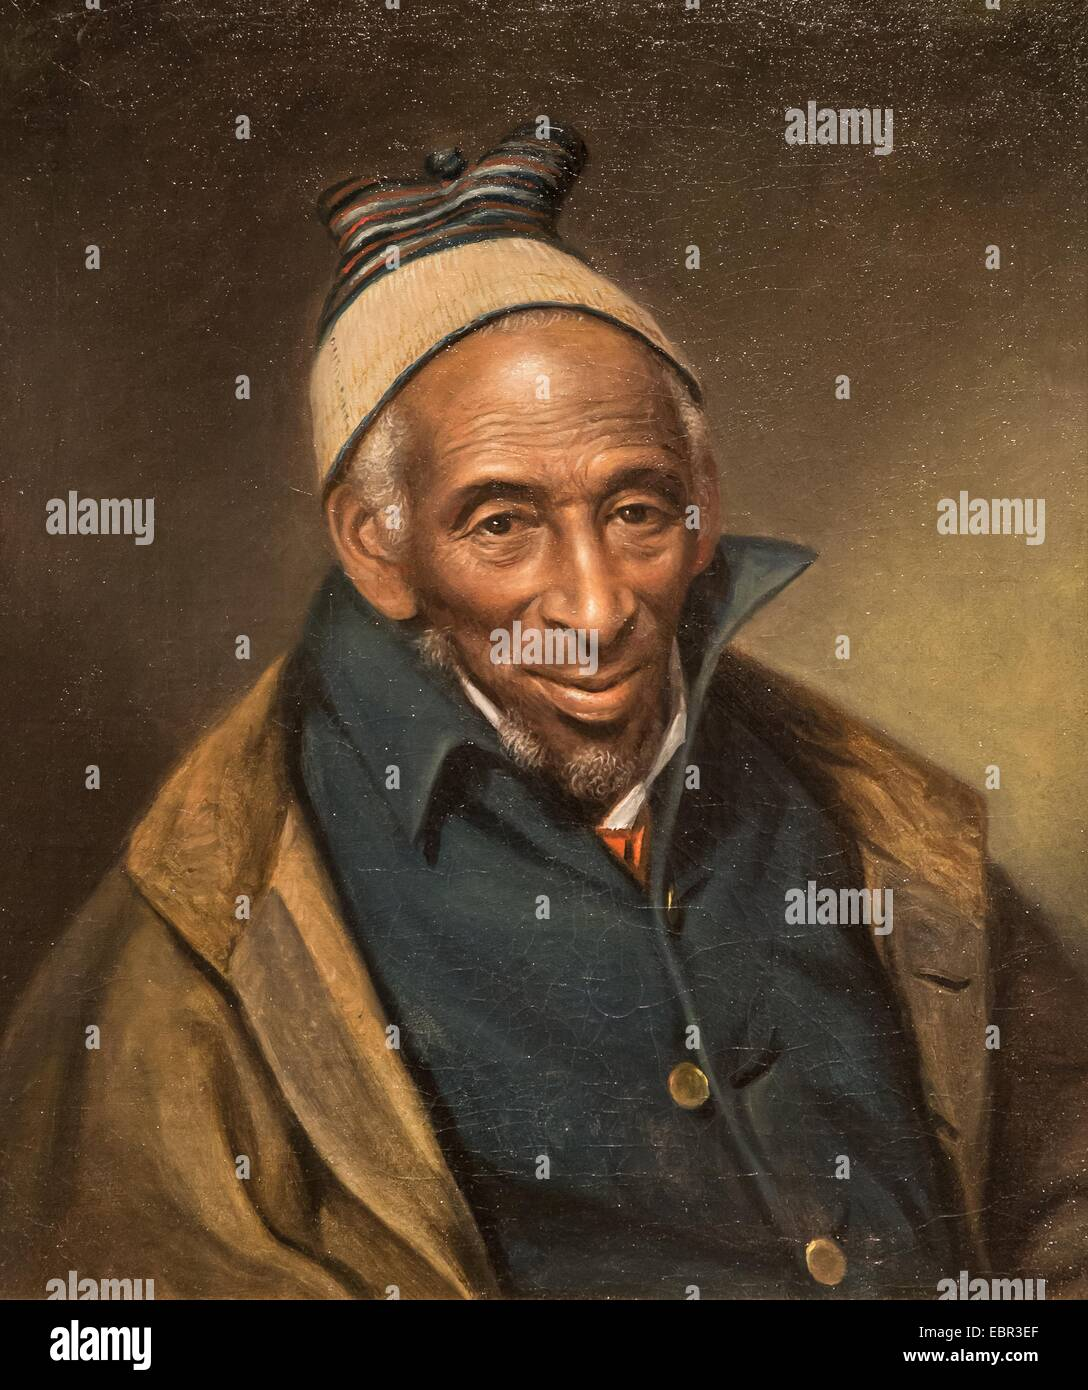 Exceptionnel ActiveMuseum0003283.jpg / Portrait of Yarrow mamout (Muhammad Yaro  WK46